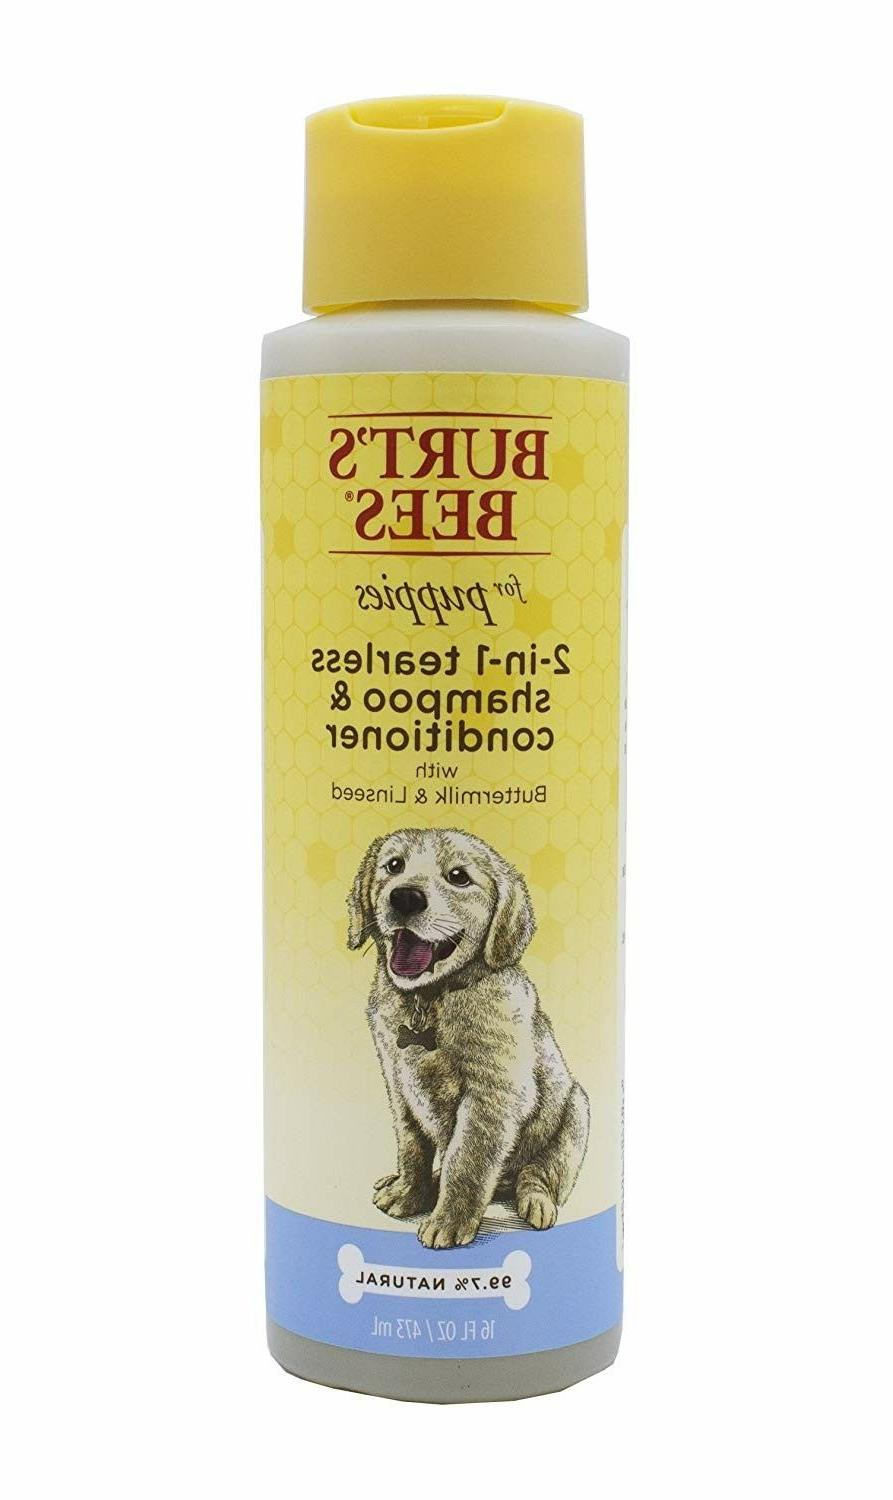 Burt's Dog Shampoo All-Natural Tearless in 1 Conditioner